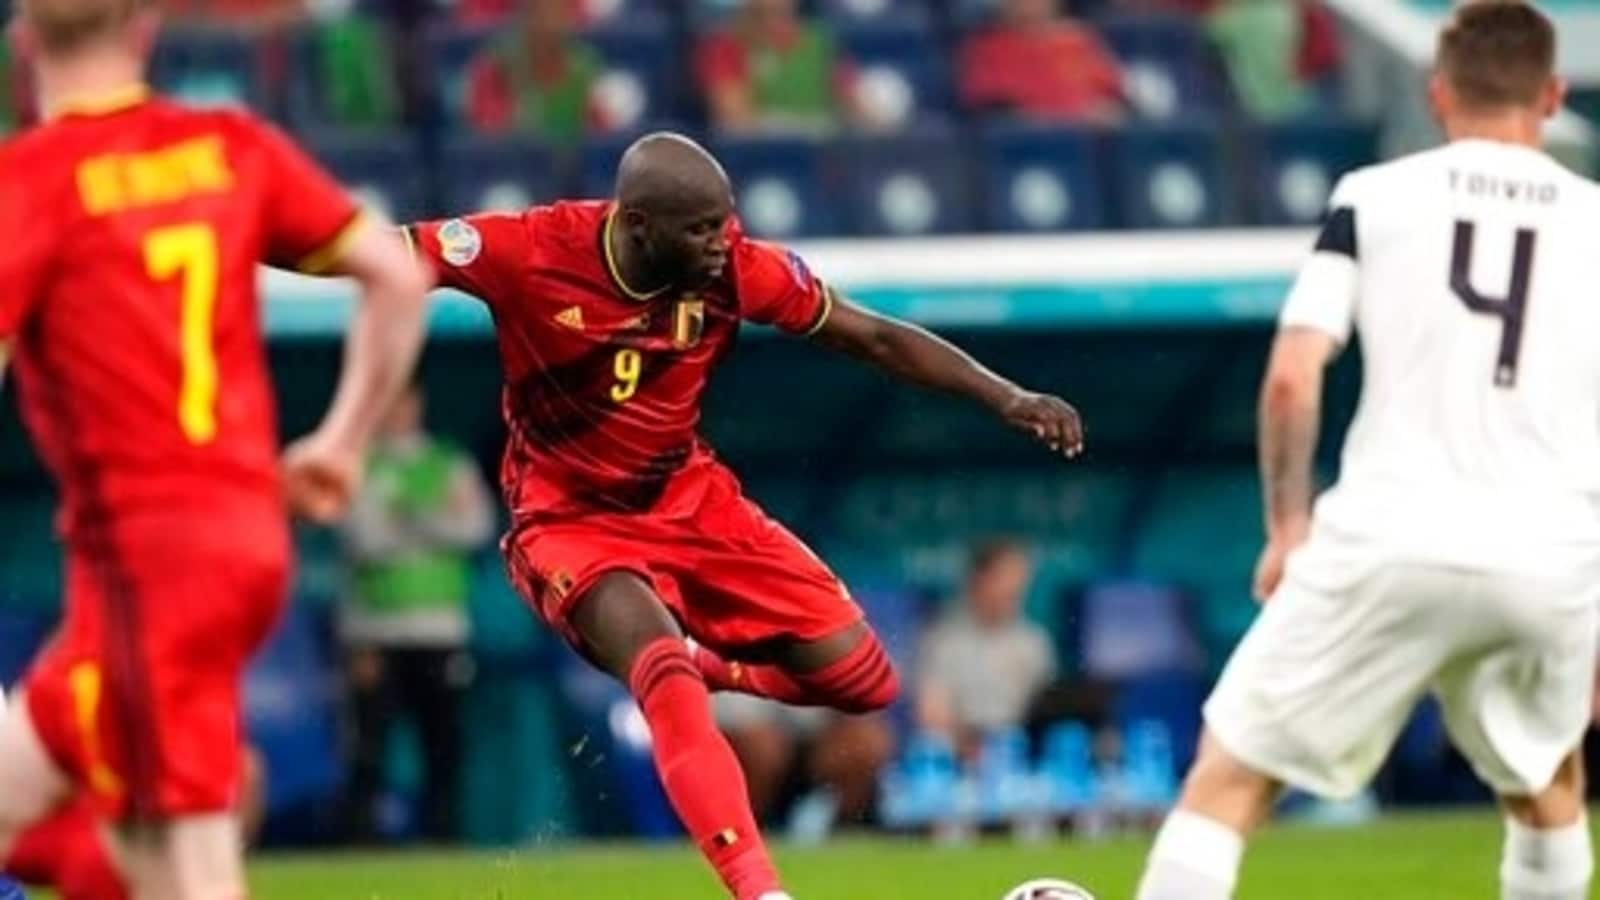 Euro 2020 Highlights, Finland vs Belgium: Belgium beat Finland 2-0, finish at top position in Group B